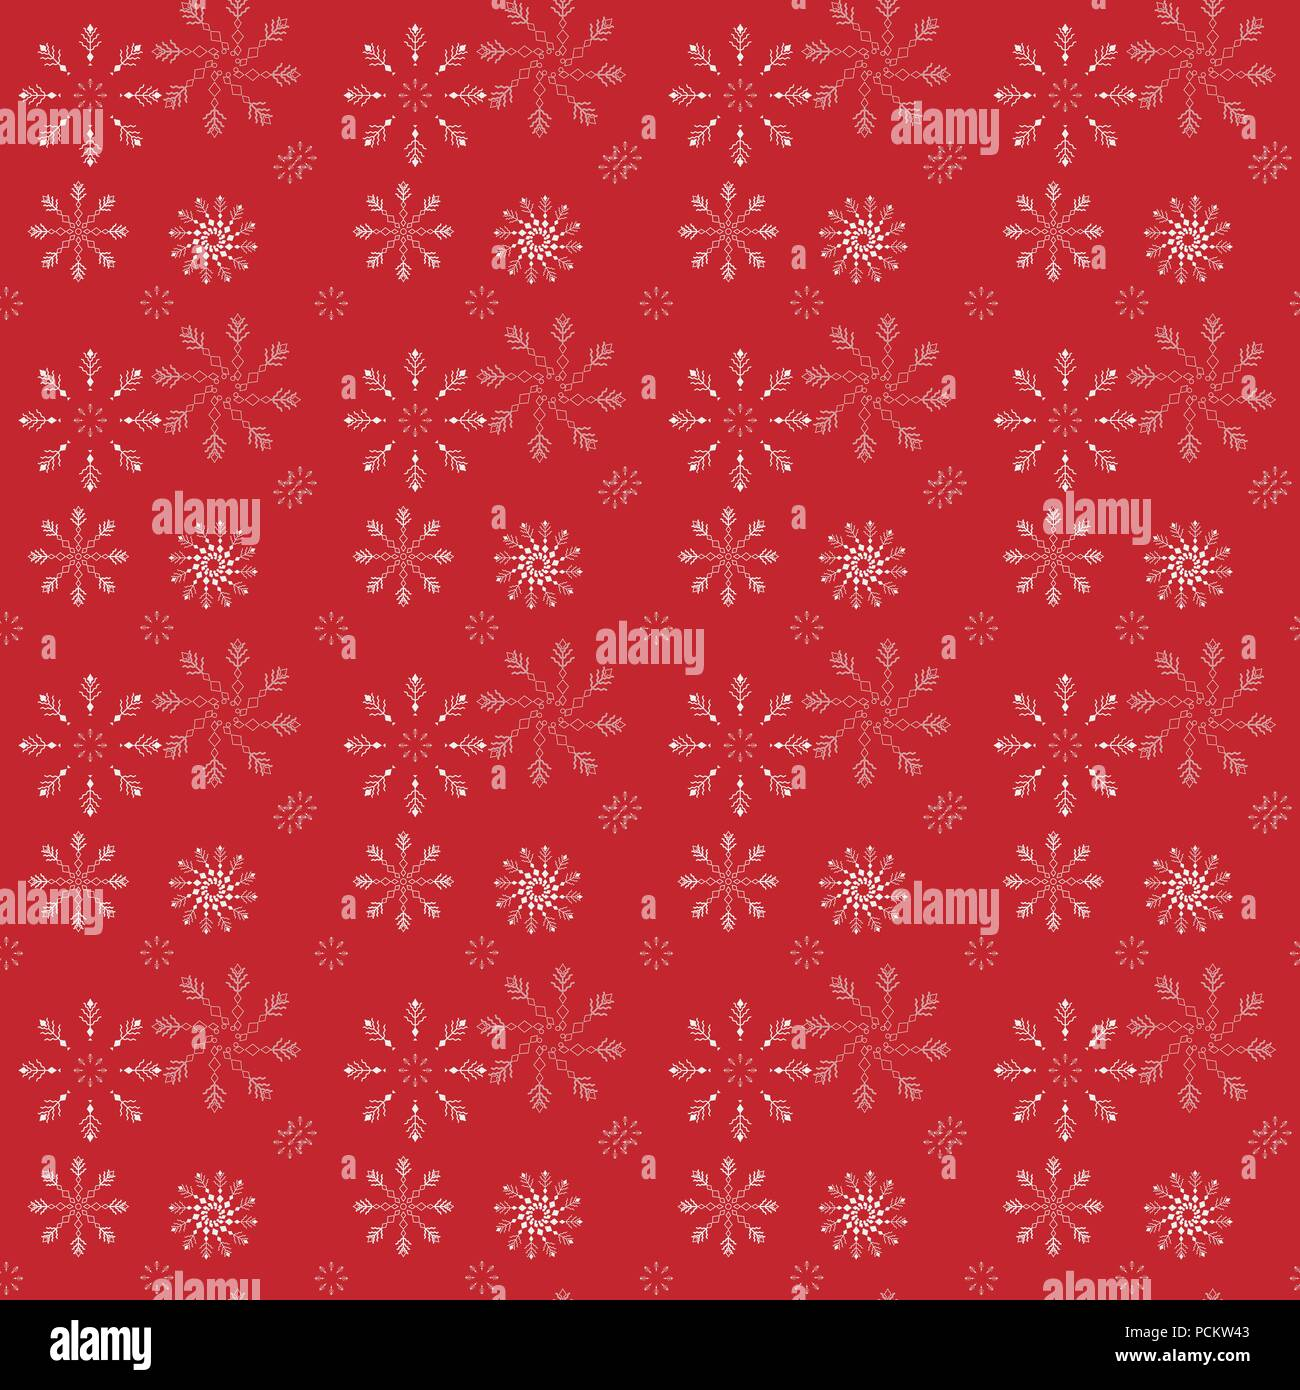 Winter Seamless Pattern With Little Flat White Snowflakes On Red Background New Year Backdrop Vector Christmas For Fabric Textile